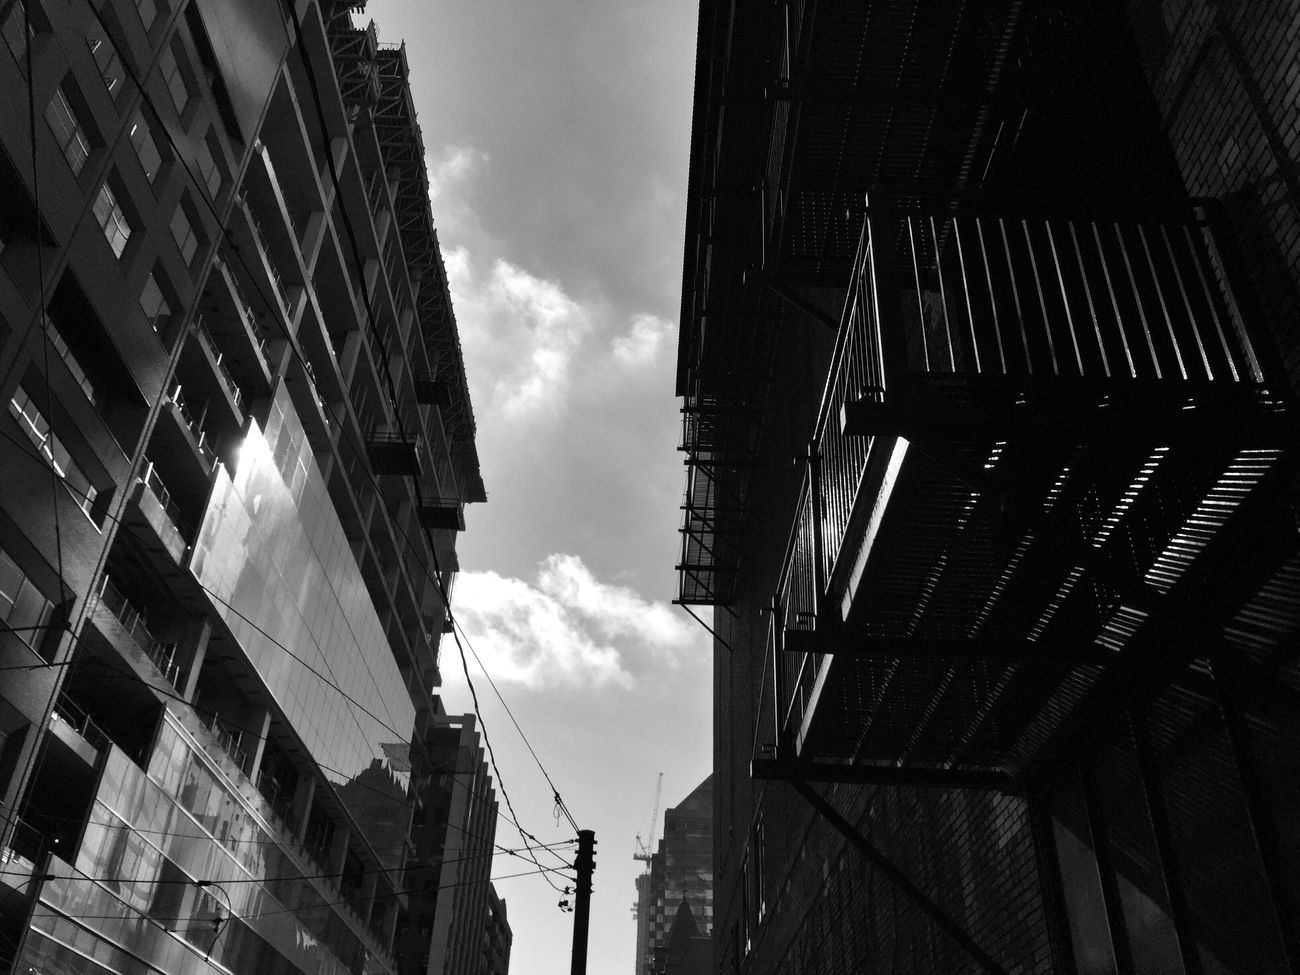 Going... Architecture Building Exterior Low Angle View City Cloud - Sky Built Structure EyeEm Best Shots EyeEm Gallery EyeEm Masterclass EyeEm Best Shots - Black + White Street Photography Darkness Light-Play Shootermag EE_Daily: Black And White Bw_collection Bw_lover B&w Street Photography Architectural Feature Building Story Black And White Blackandwhite Doinbuildings